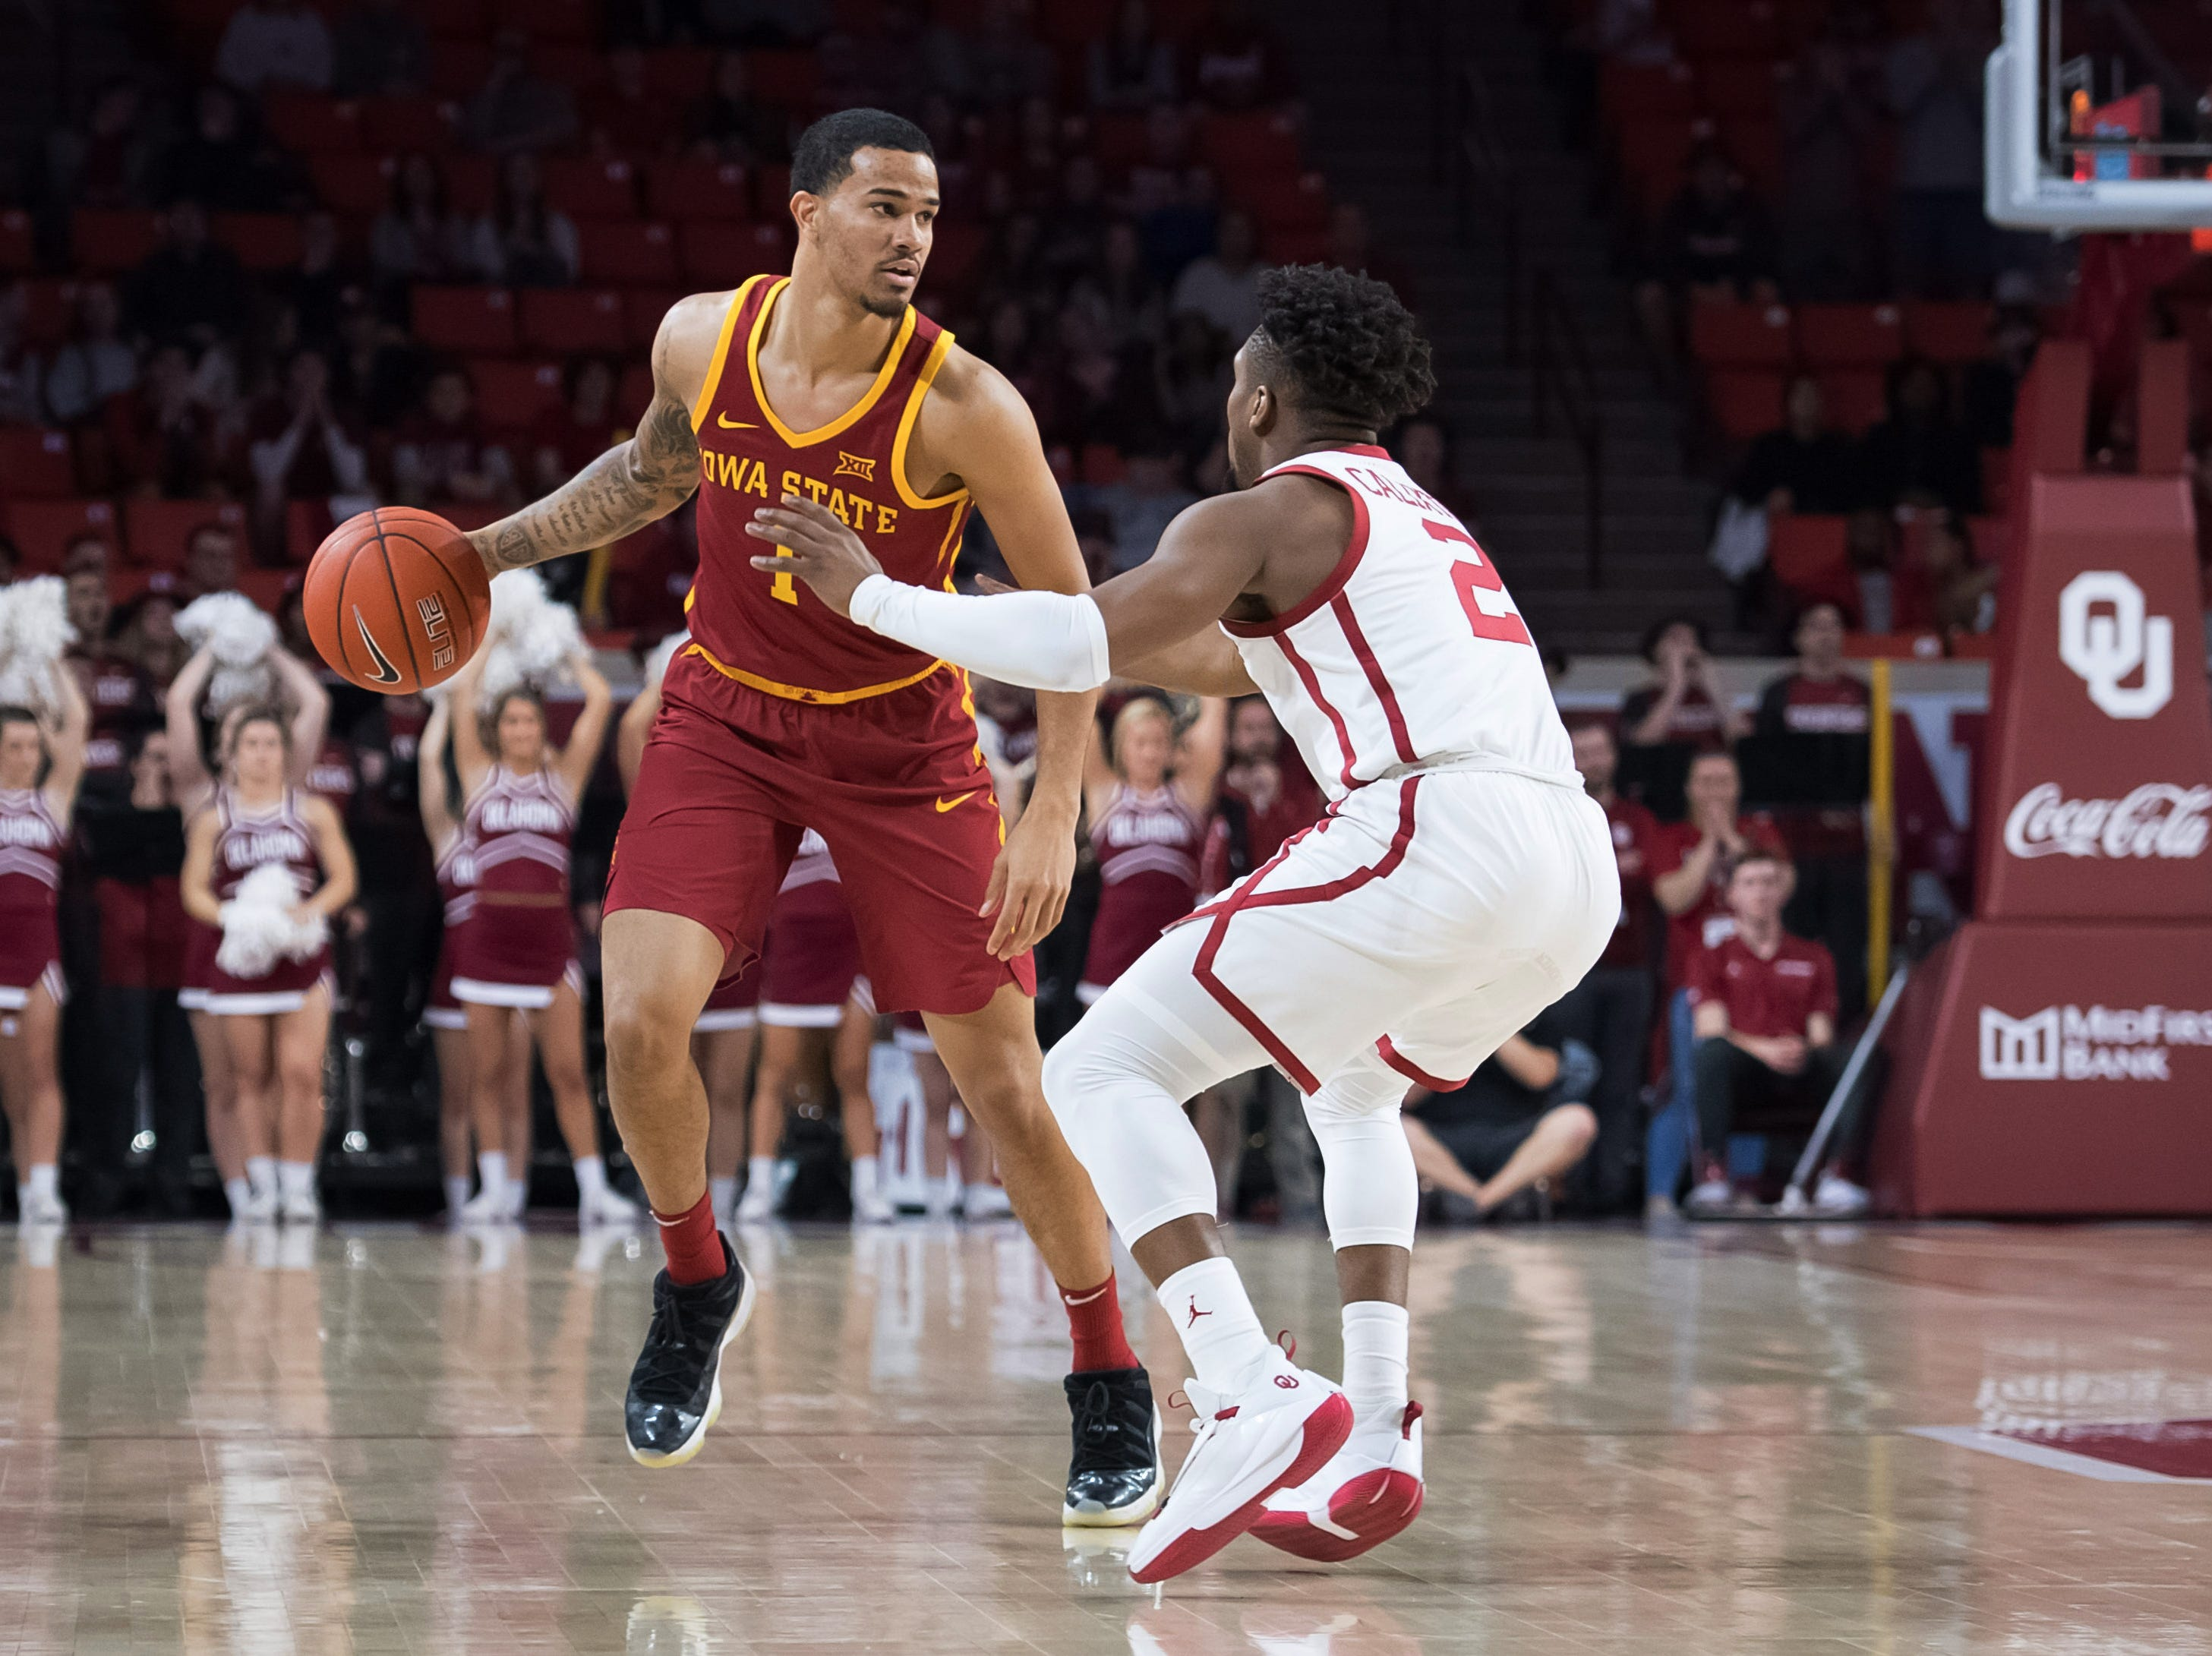 Iowa State Cyclones guard Nick Weiler-Babb (1) dribbles the ball defended by Oklahoma Sooners guard Aaron Calixte (2) during the first half at Lloyd Noble Center.